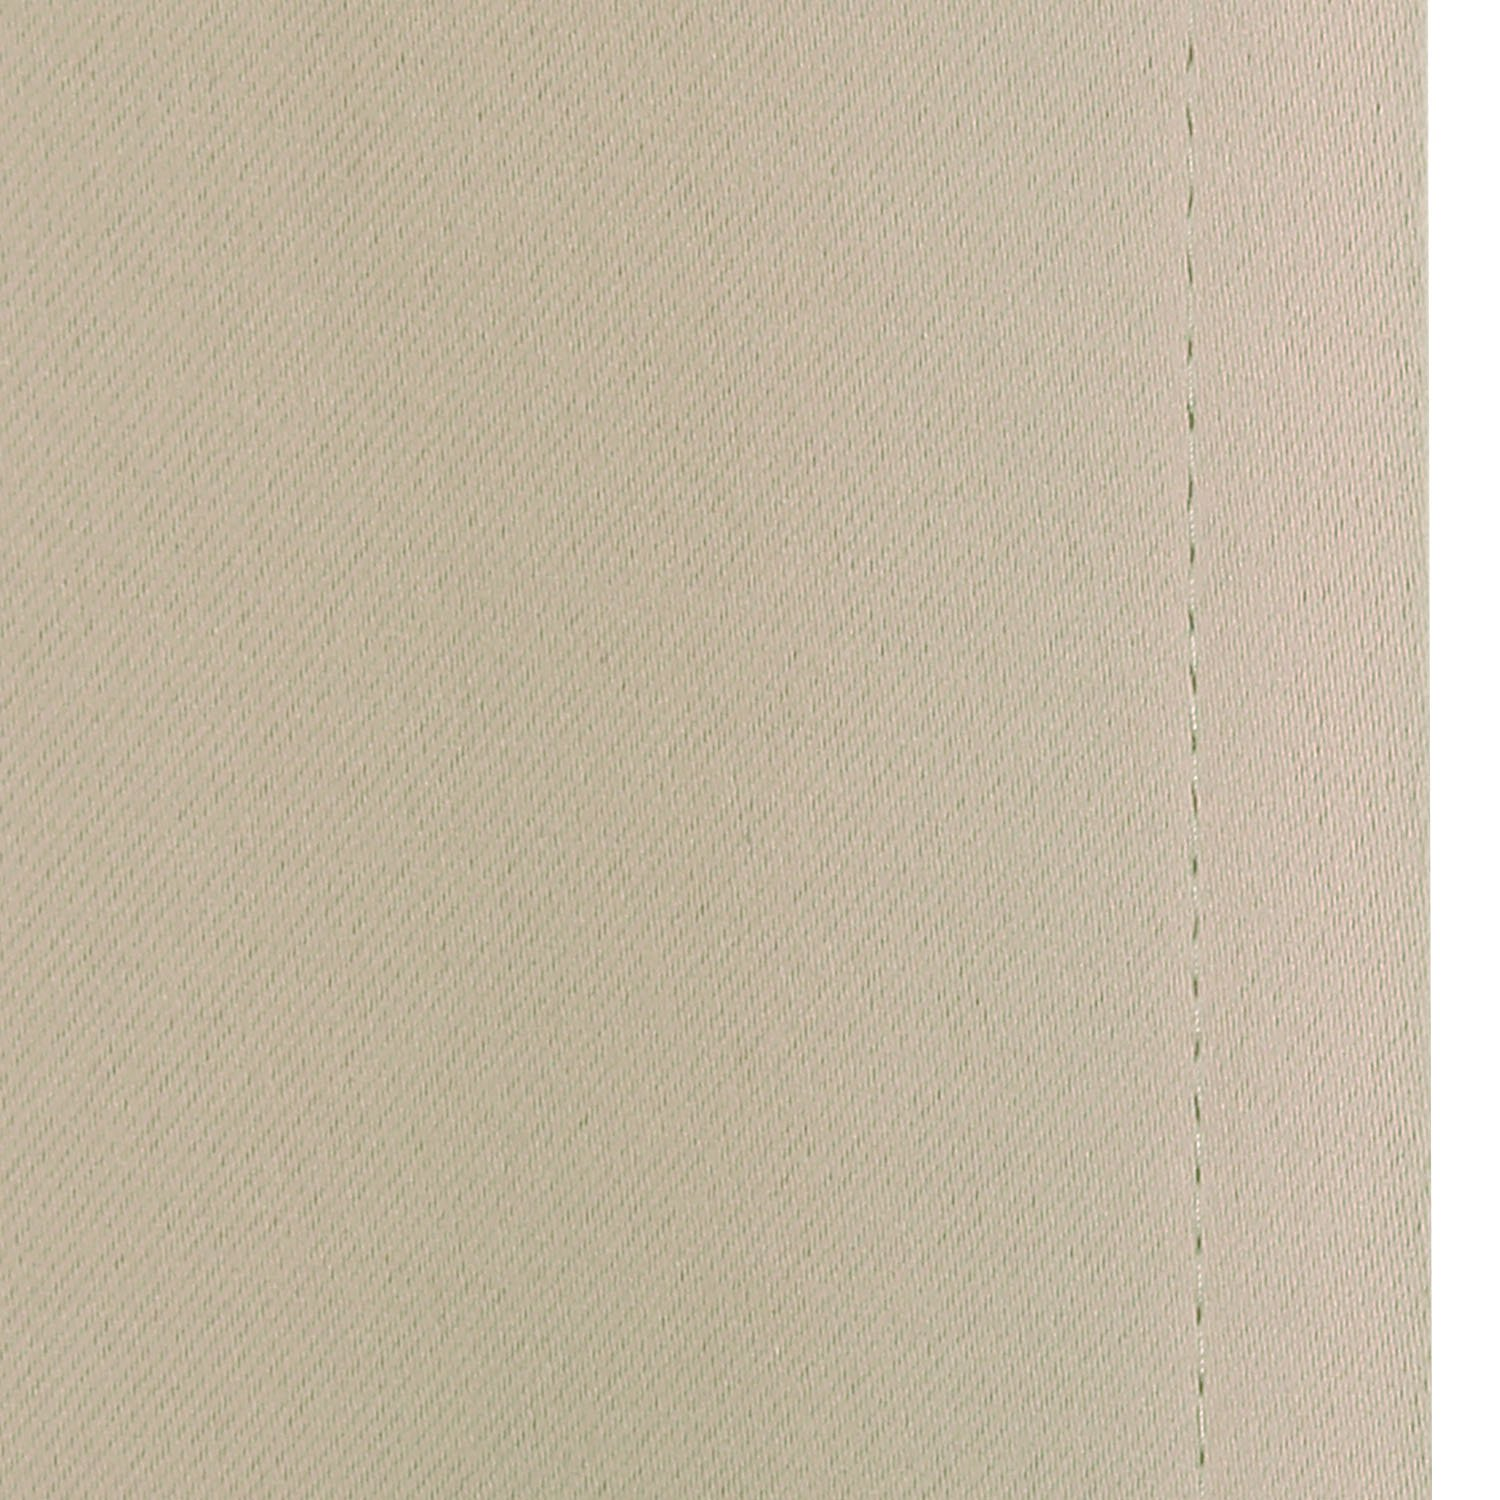 Deconovo Room Darkening Thermal Insulated Blackout Grommet Window Curtain Panel for Living Room, Beige,42x63-Inch,1 Panel by Deconovo (Image #6)